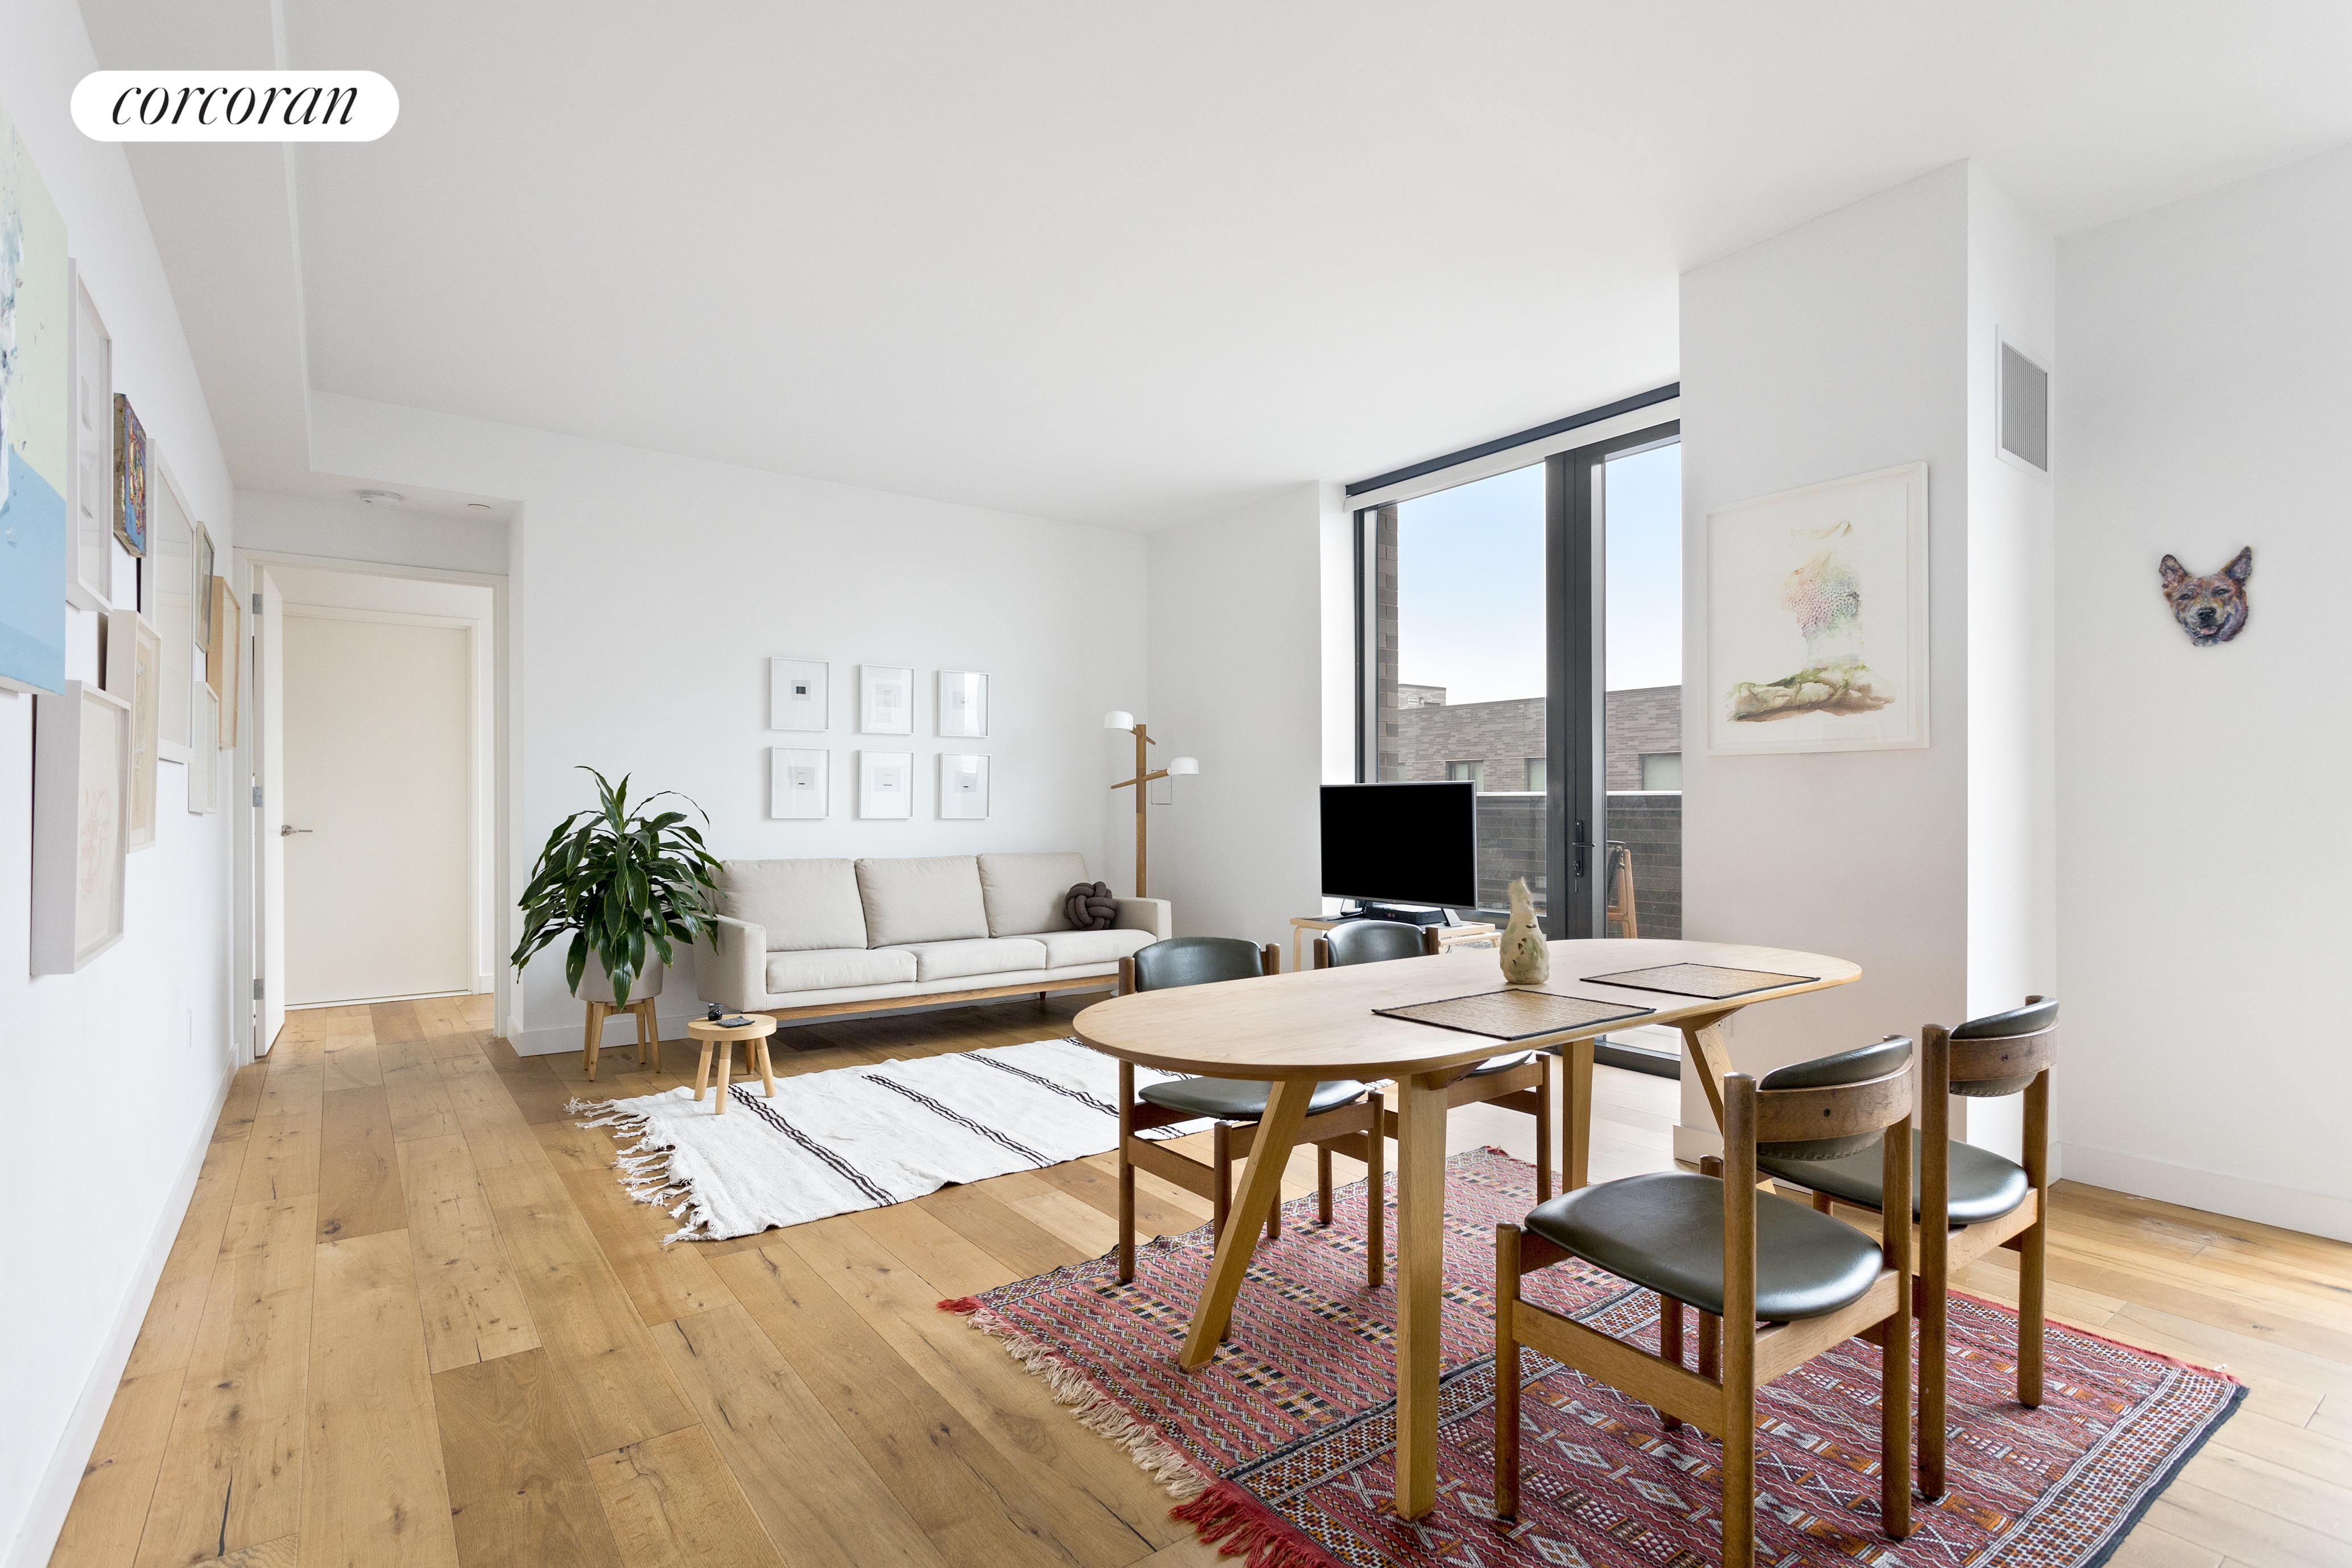 How to break the lease on your NYC apartment: 6 ways to get out legally